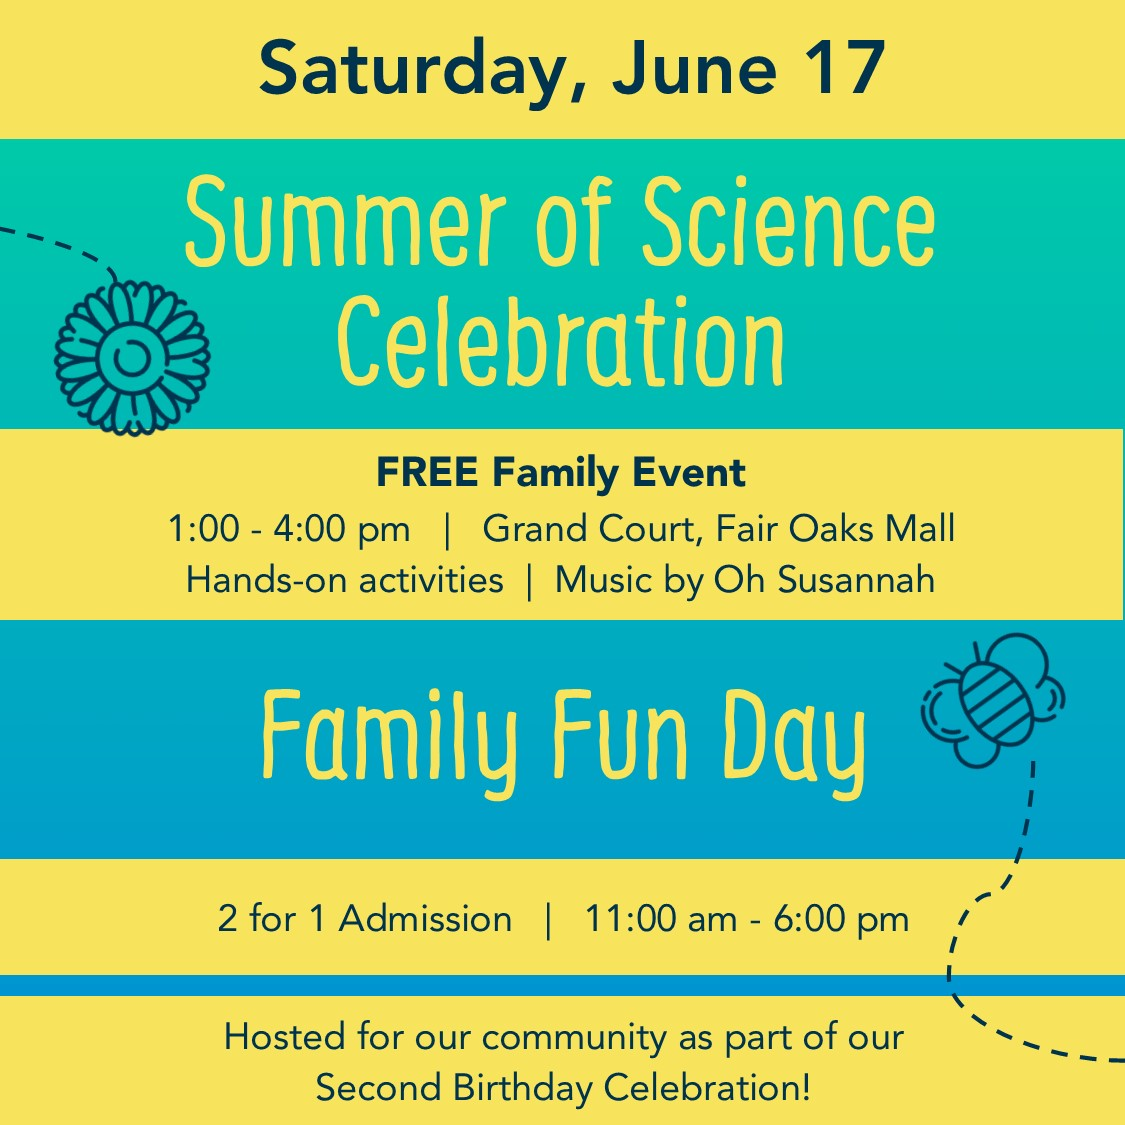 Children's Science Center event June 2017 poster